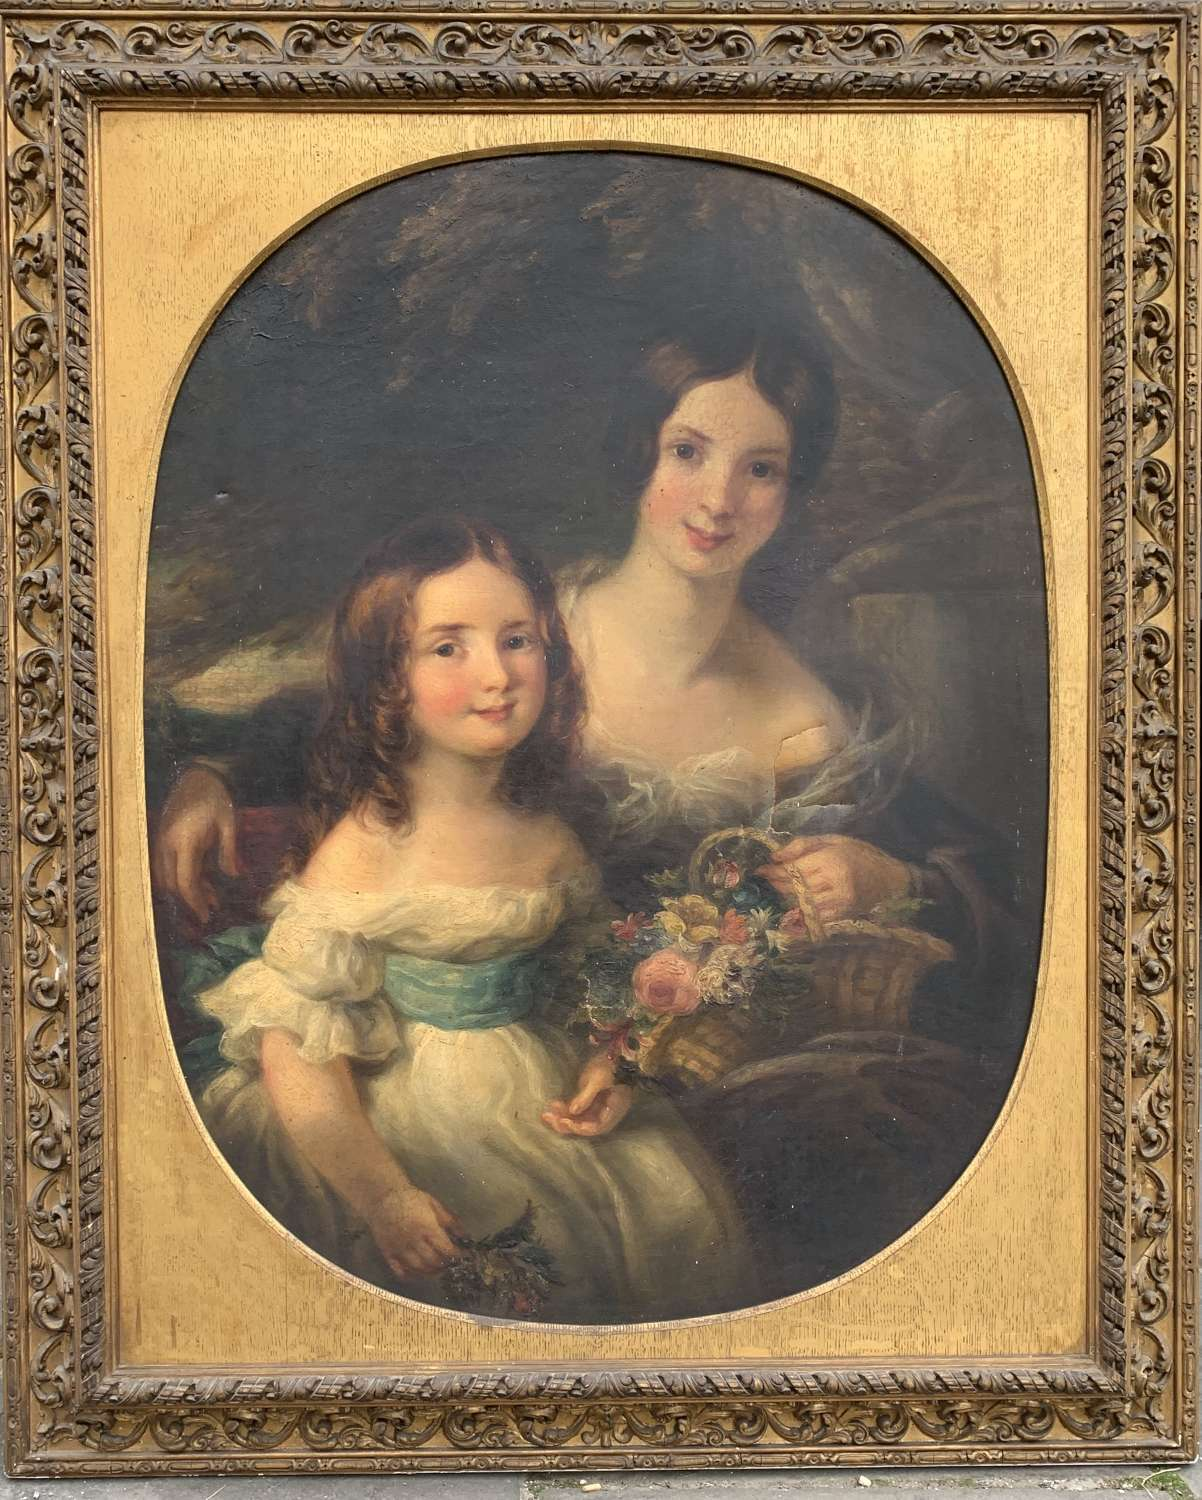 English School, circa 1860, Portrait of Two Sisters, Oil on Canvas